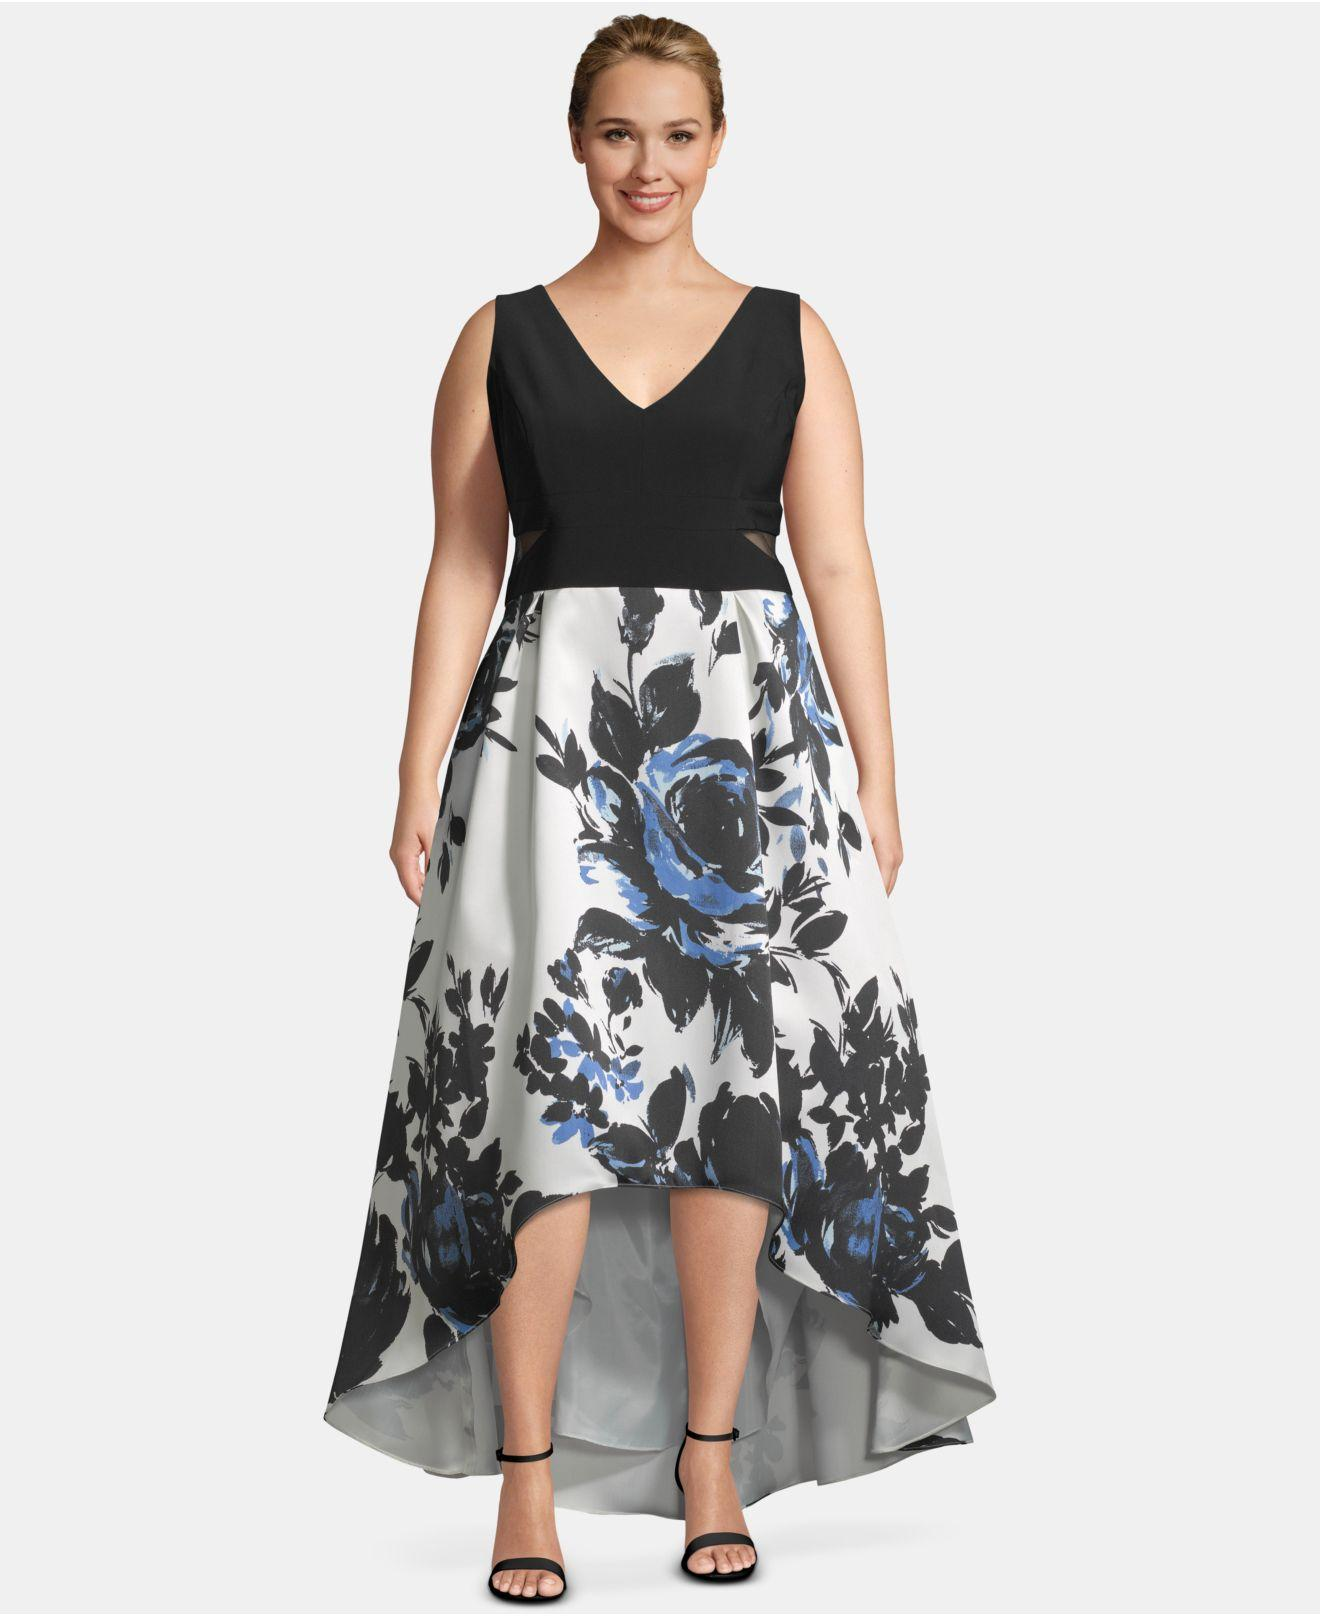 0f8a562d2a5b5 Lyst - Xscape Plus Size High-low Printed-skirt Gown in Black